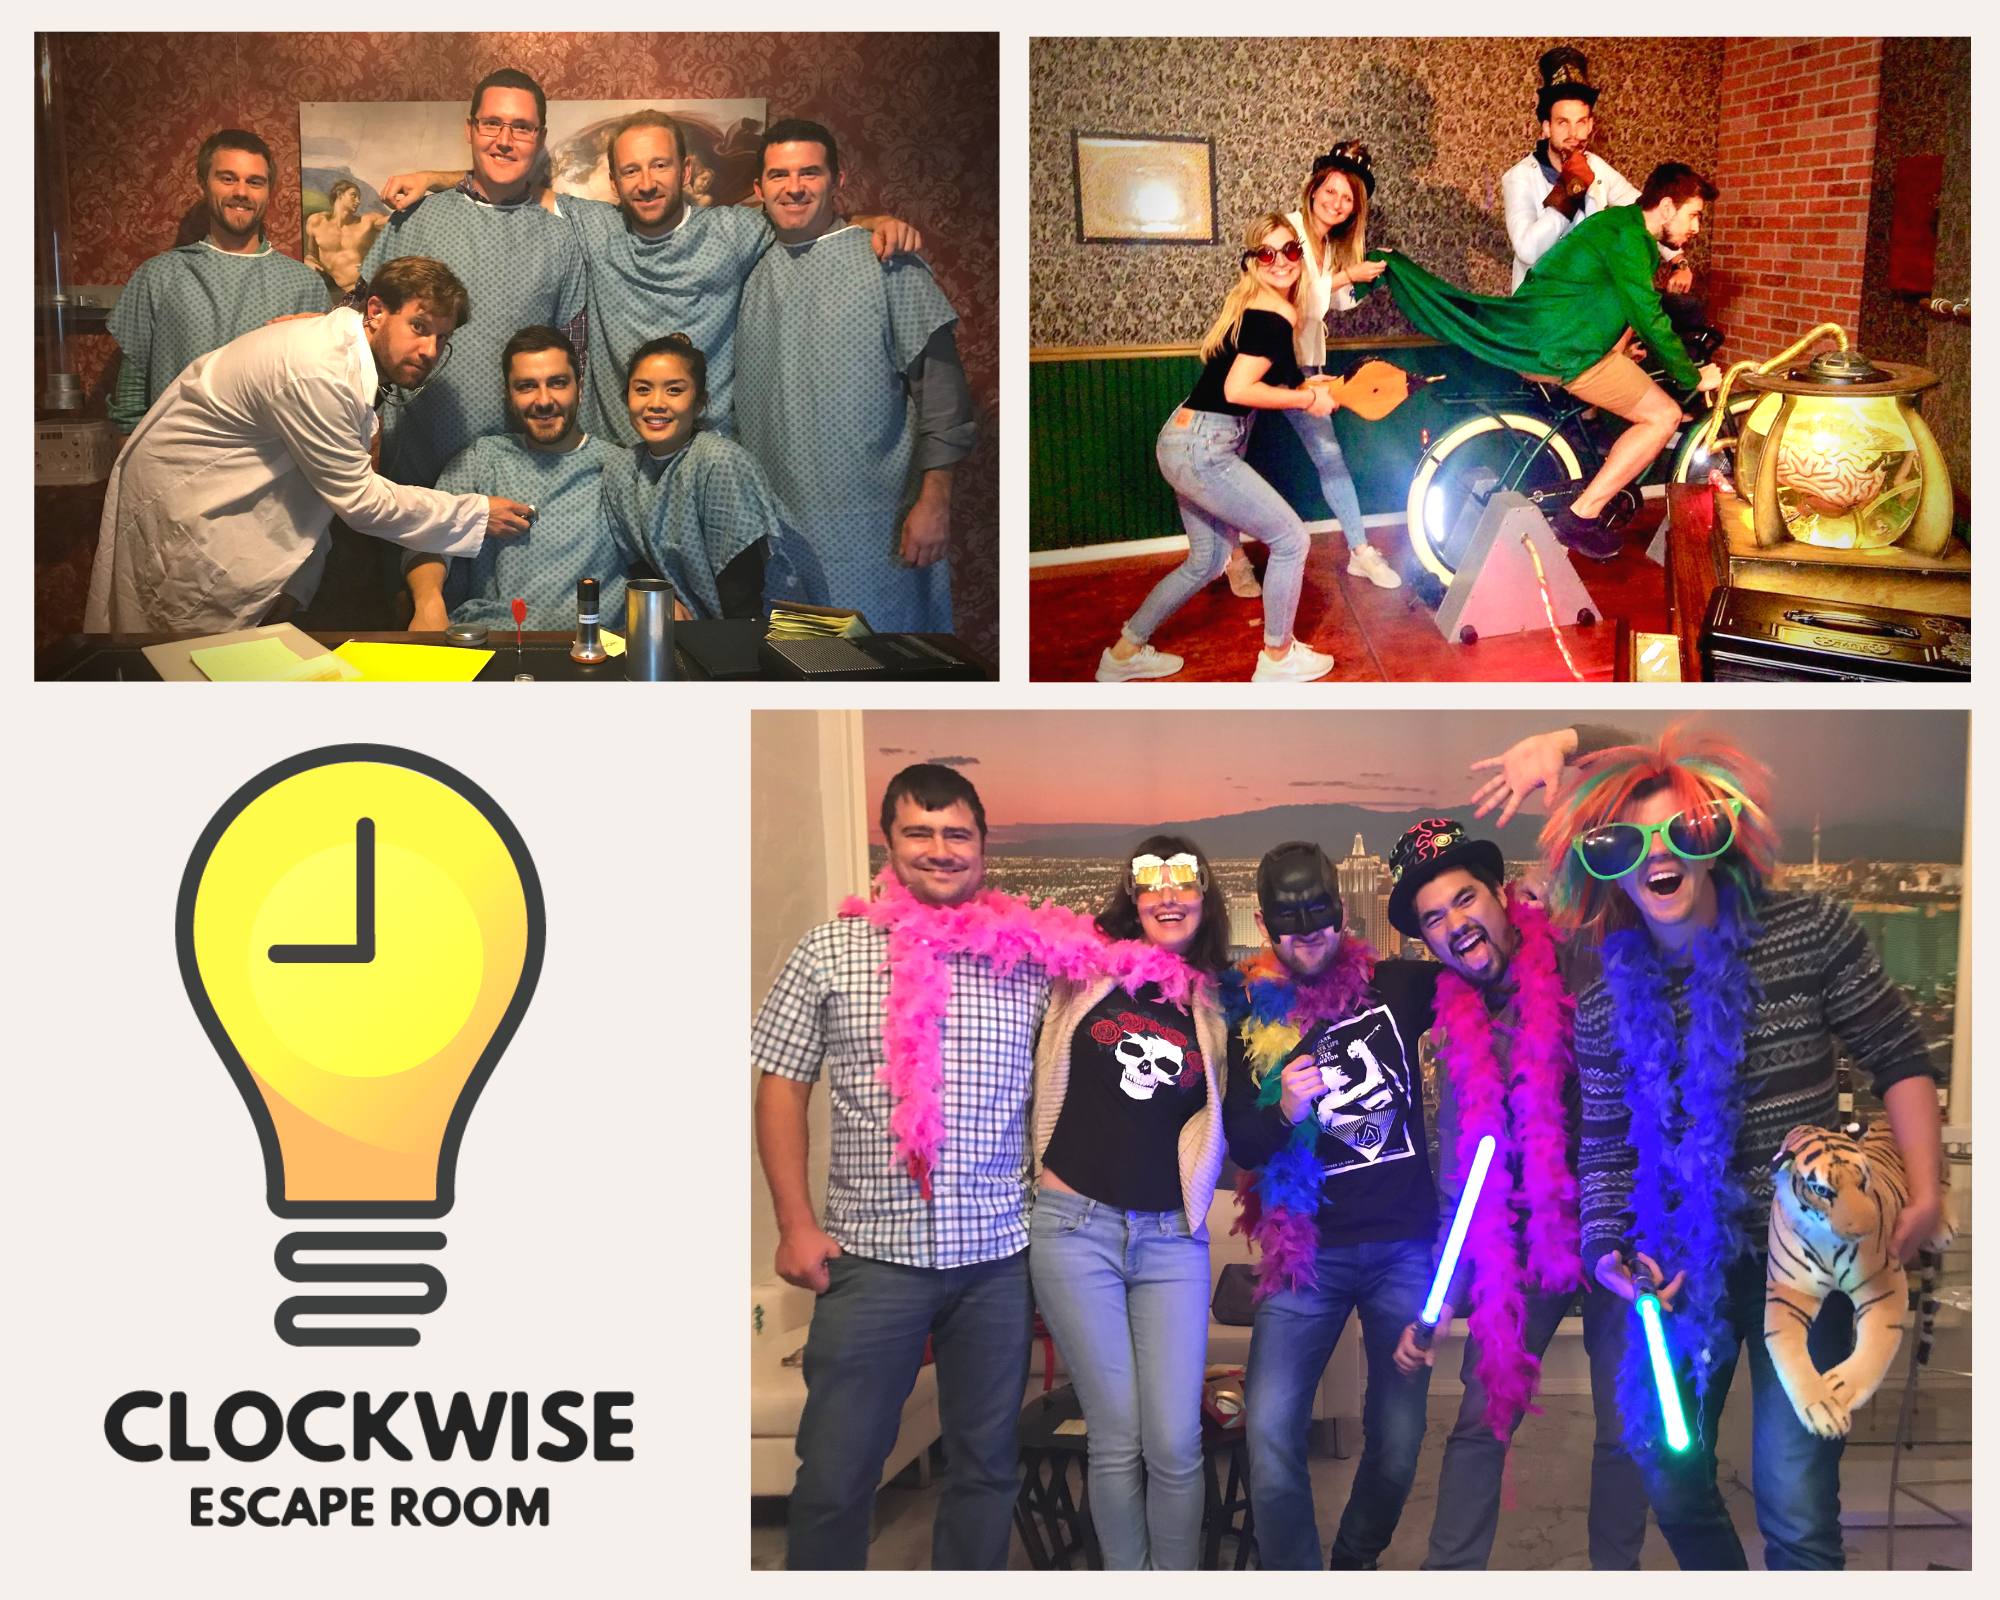 First Time Escape Room Strategy Clockwise Escape Room Boise